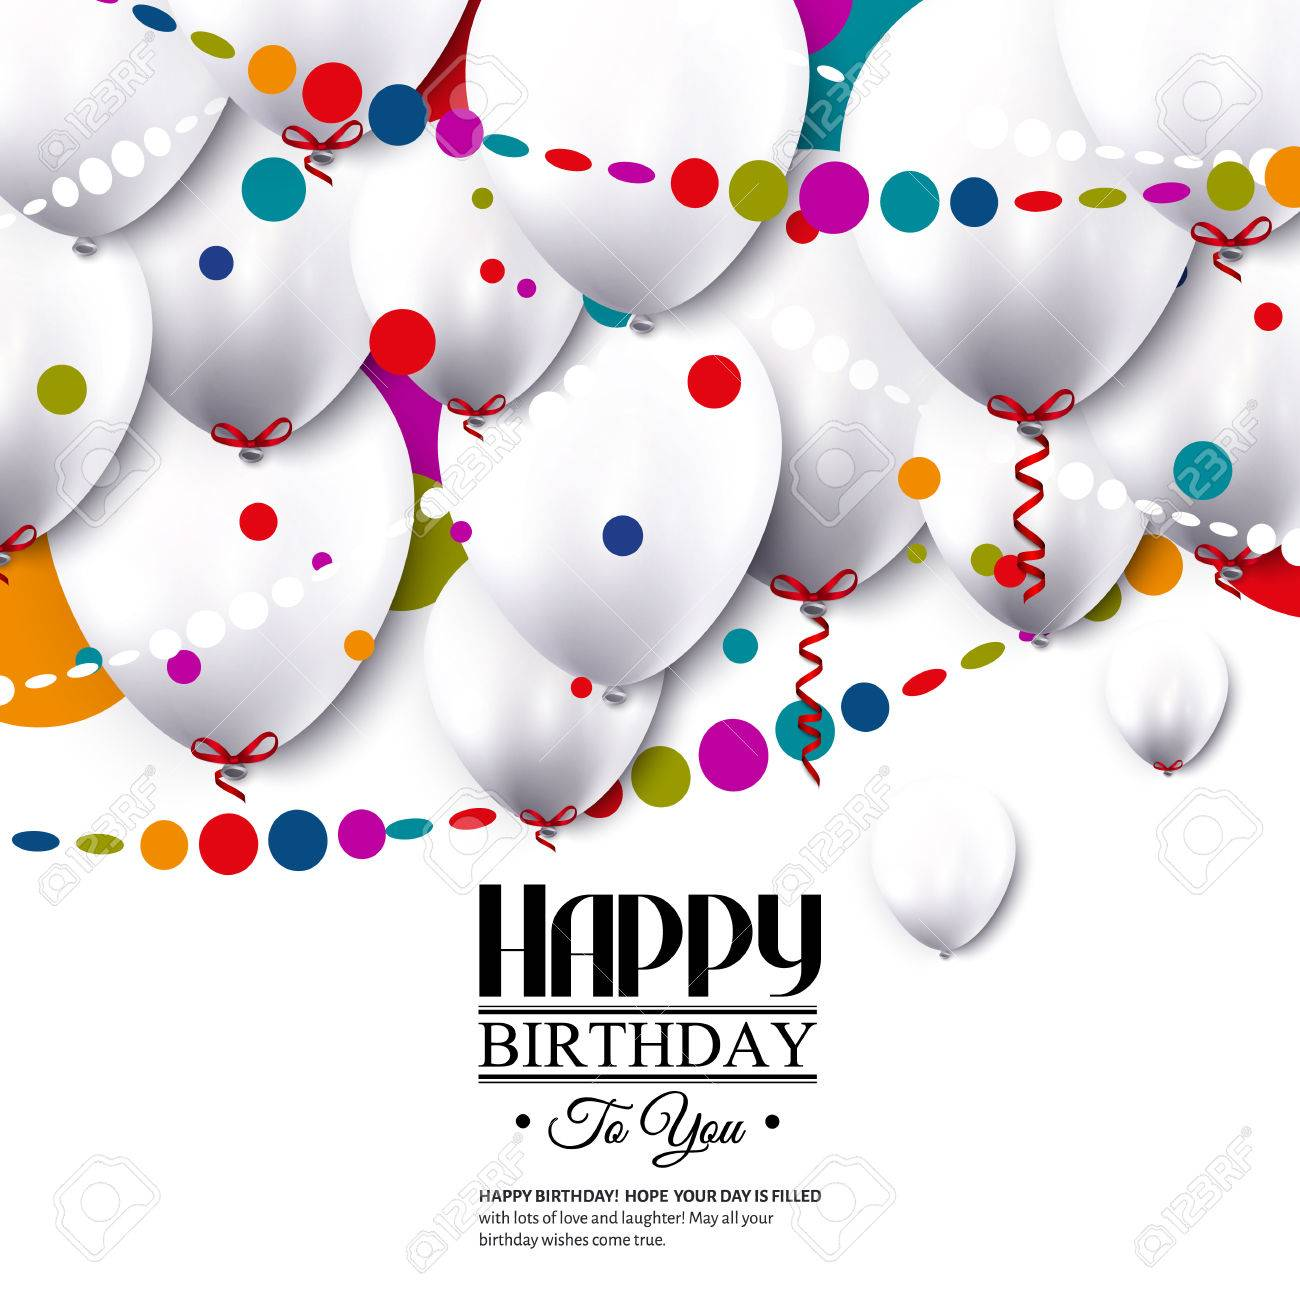 Birthday card with white balloons and confetti. - 35852912